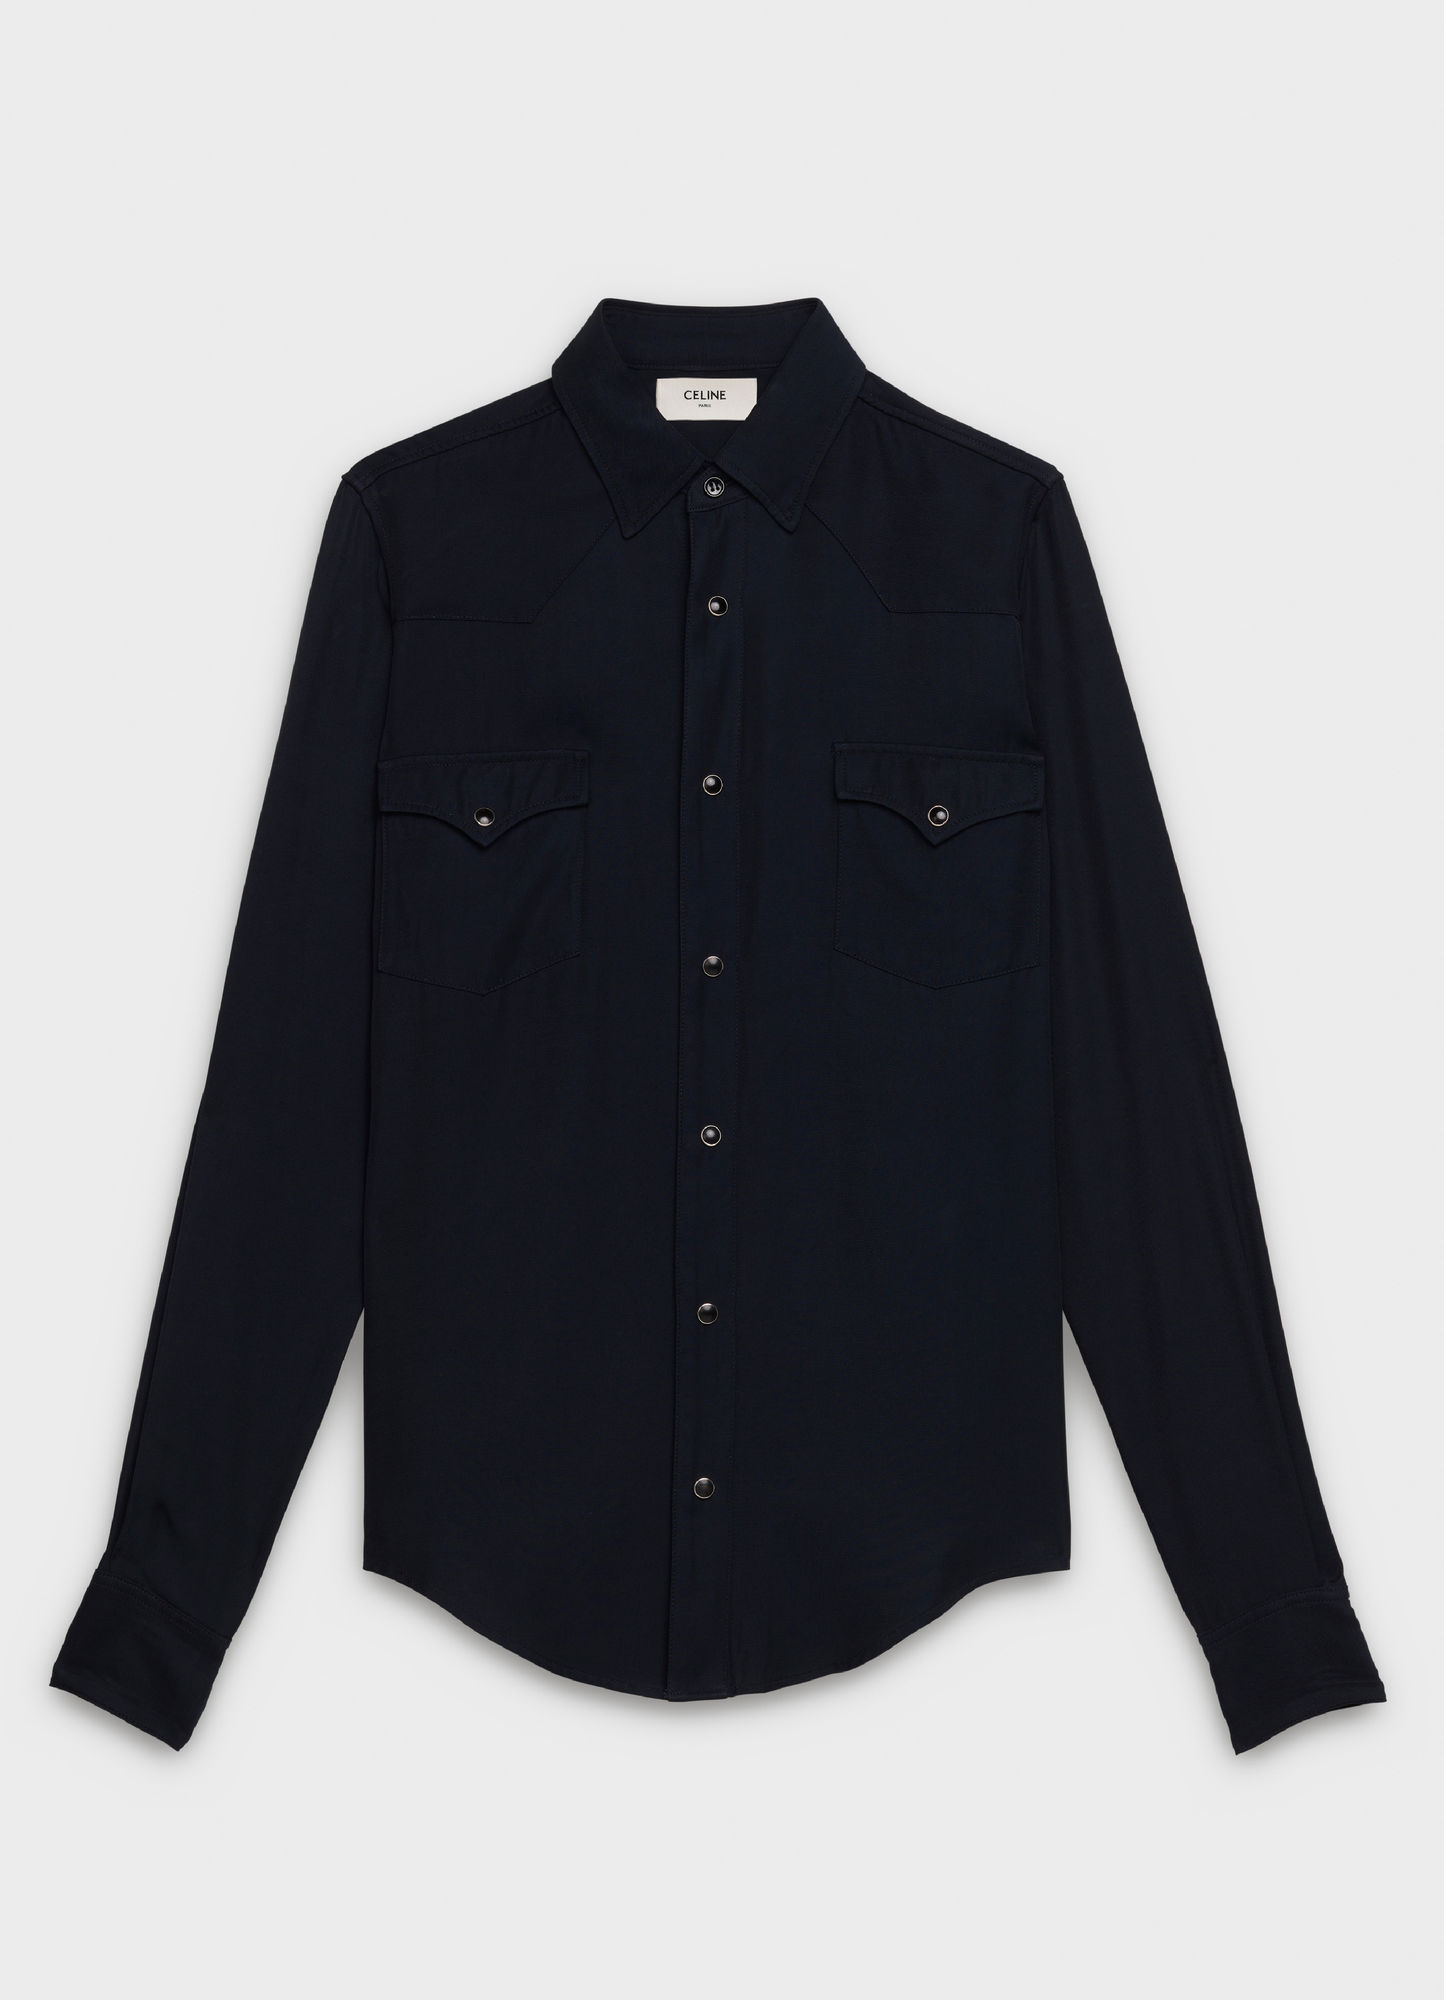 SKINNY WESTERN SHIRT IN TWILL WITH DRUGSTORE COLLAR   890 USD